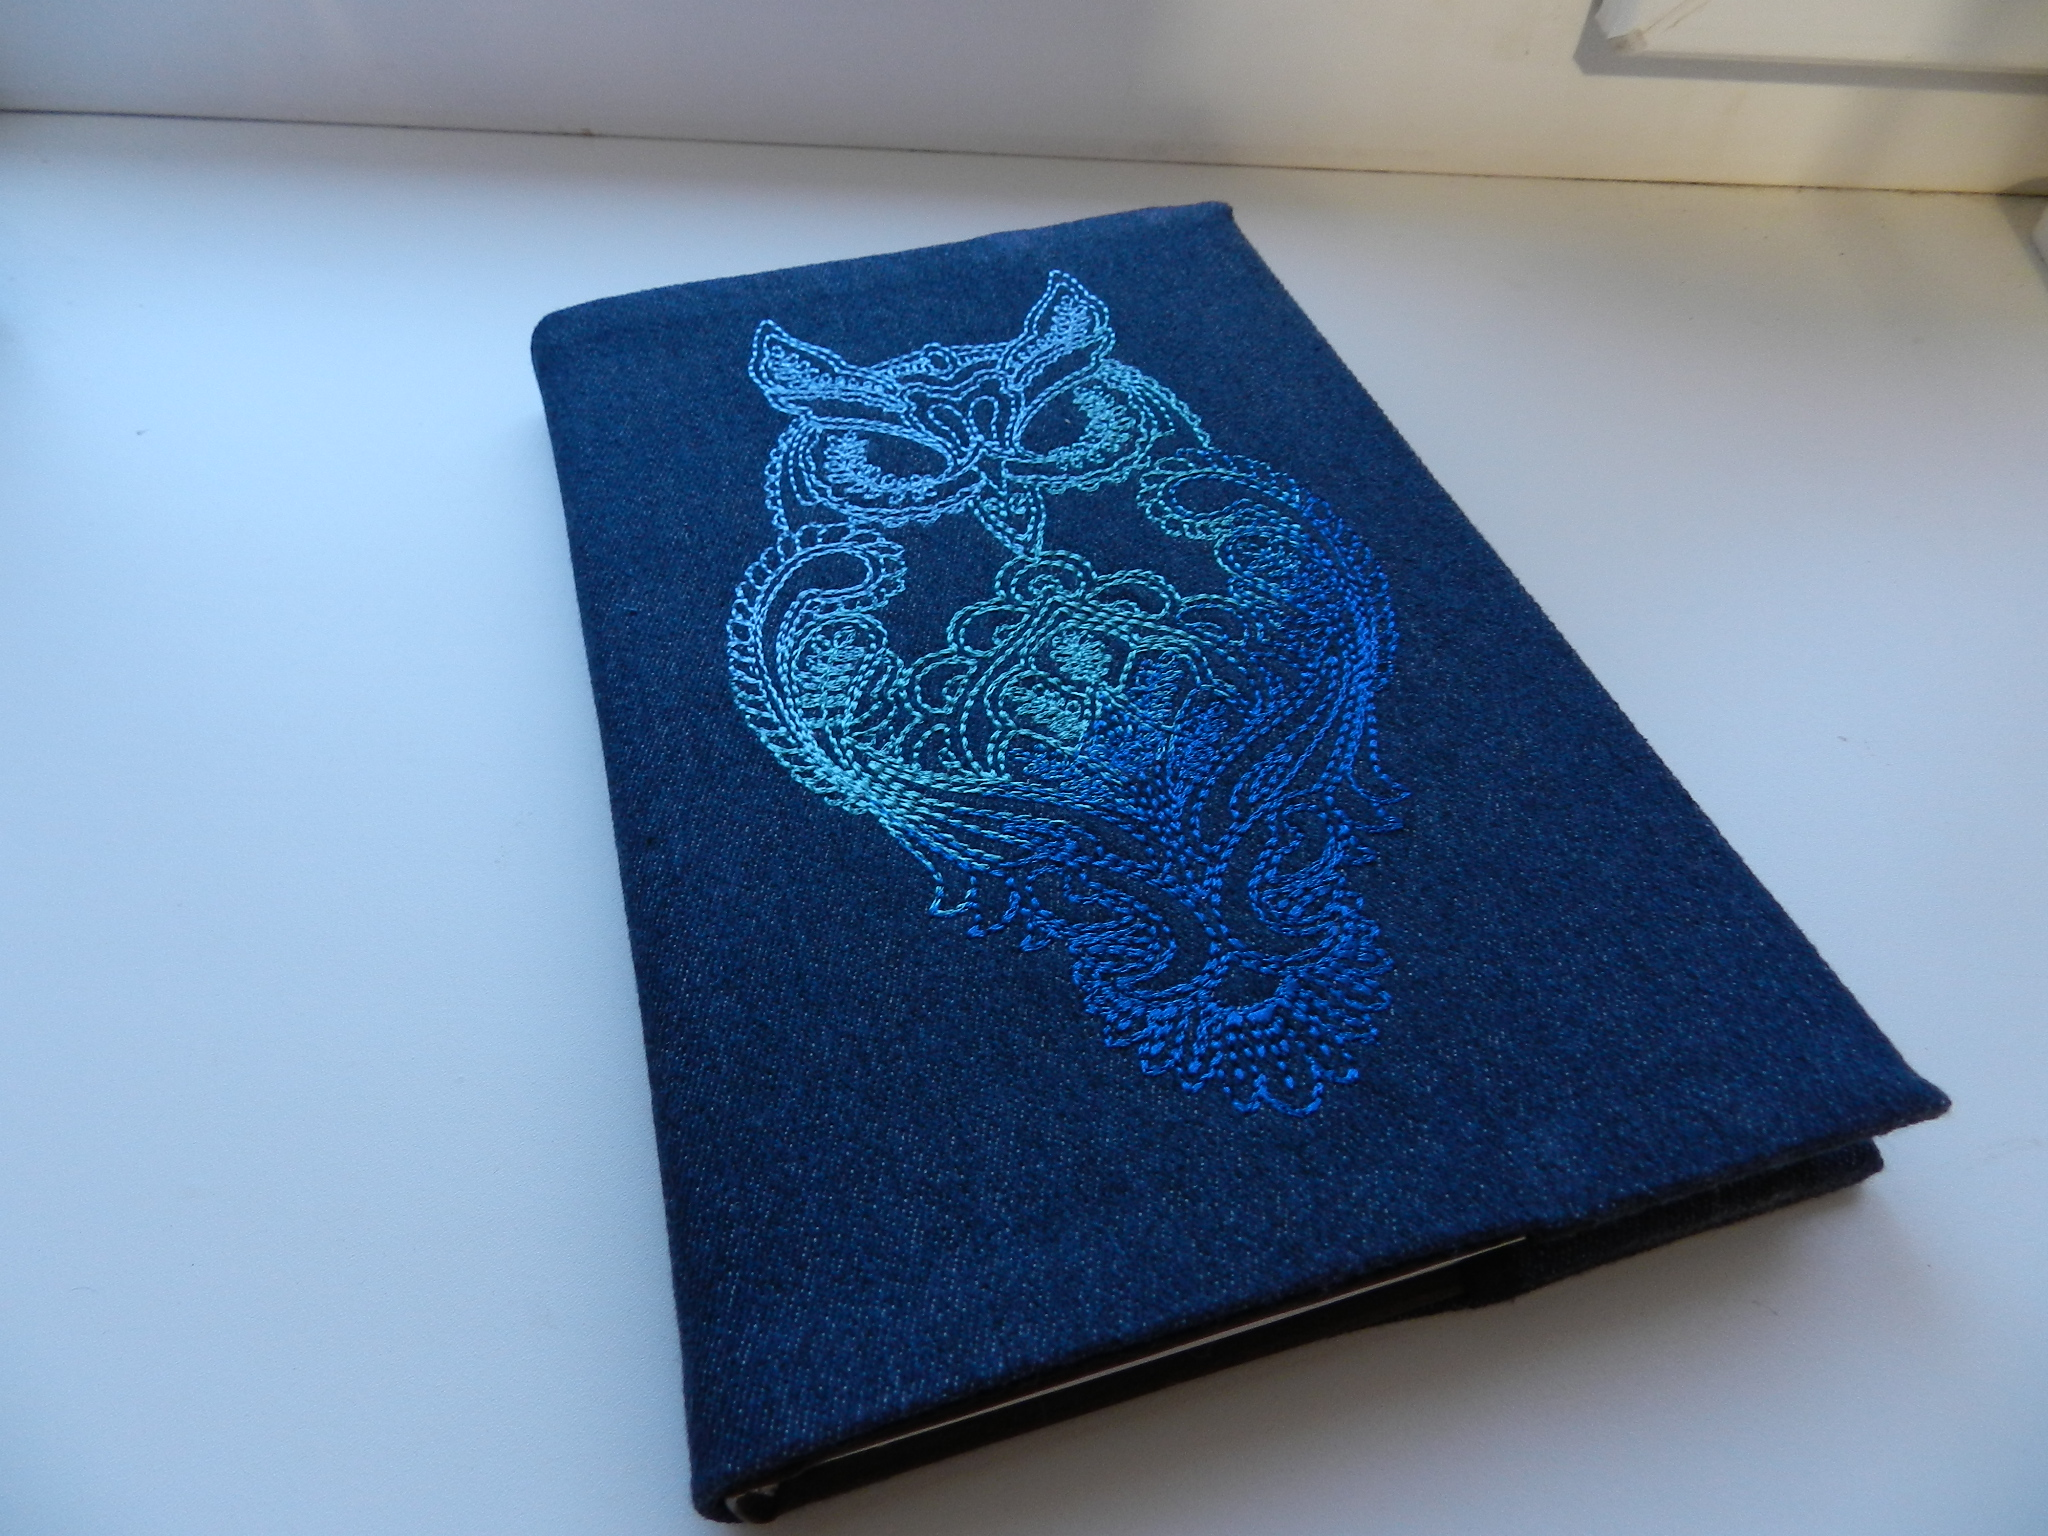 Embroidered book cover with owl free design